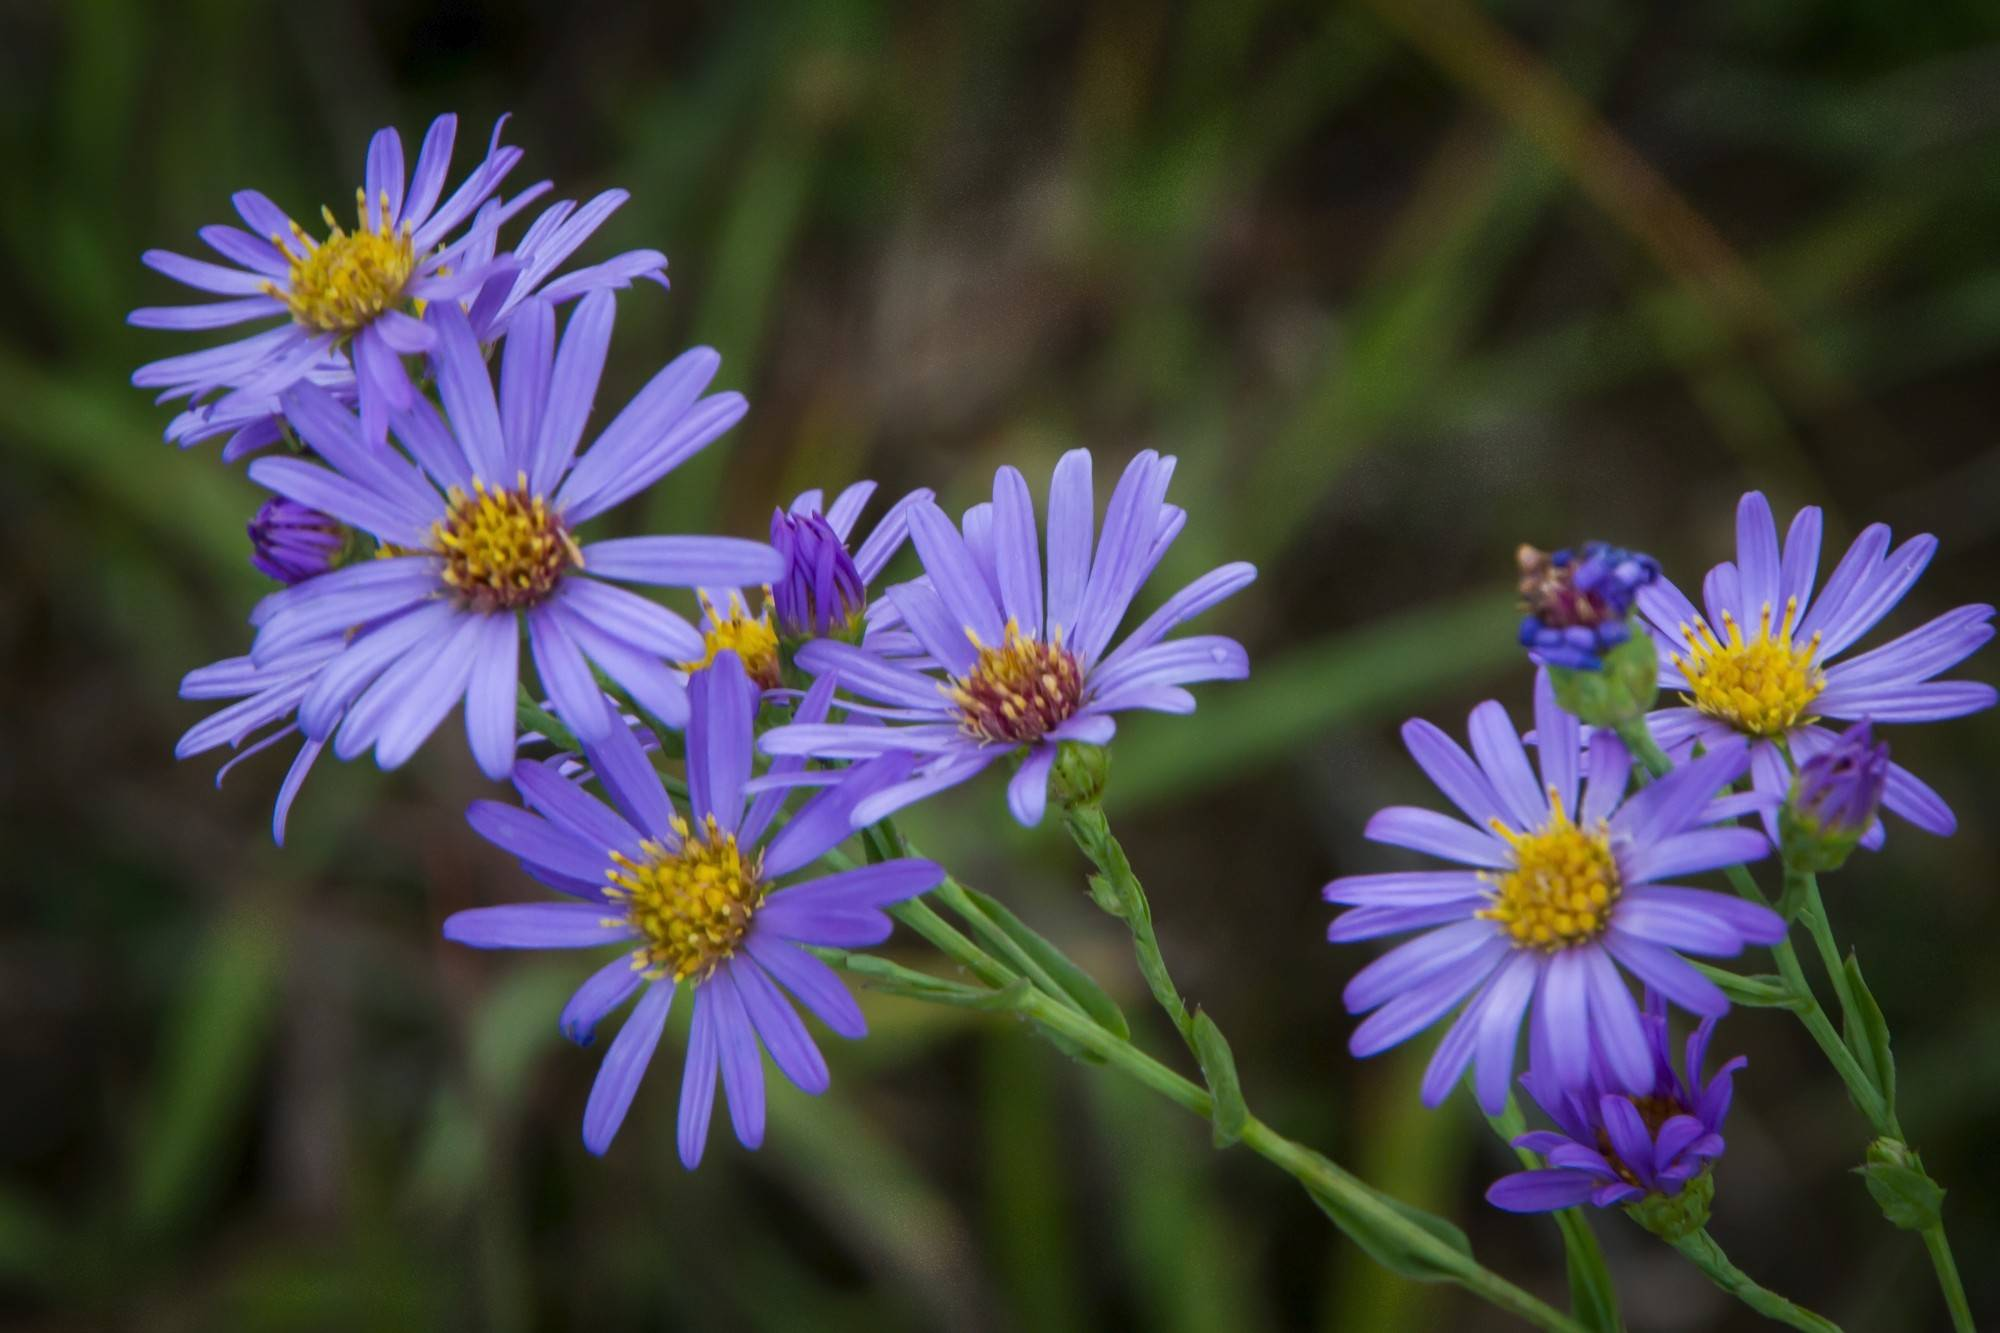 The New England Aster is just one the many native plants you will find at the Citizens for Conservation Native Plant, Shrub and Tree Sale scheduled for May 3-4 in Barrington.